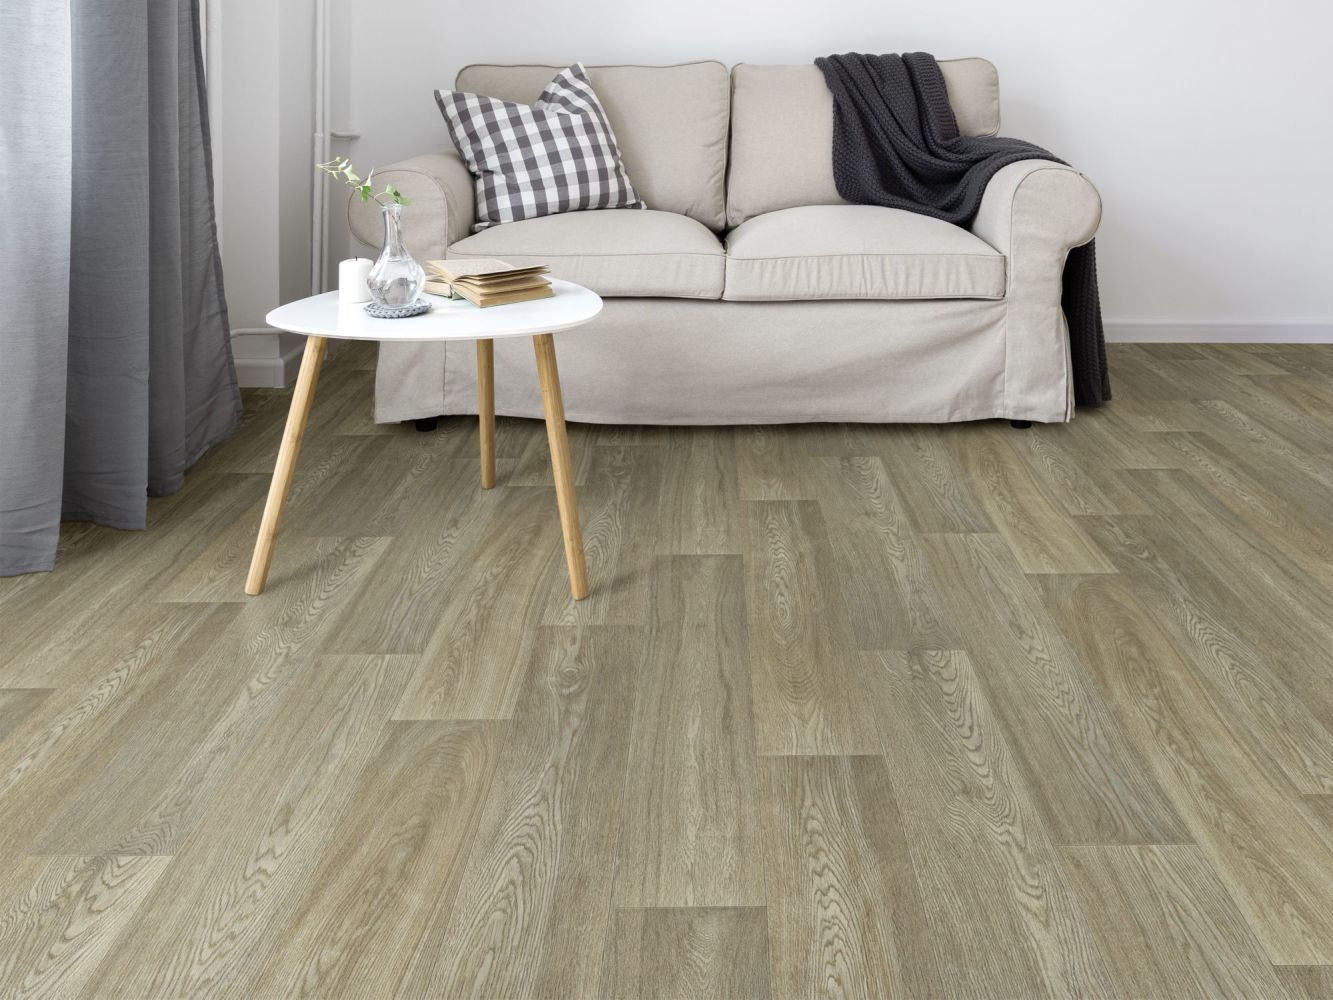 Shaw Floors Resilient Residential Cottage Chic Barnes 00254_1048V